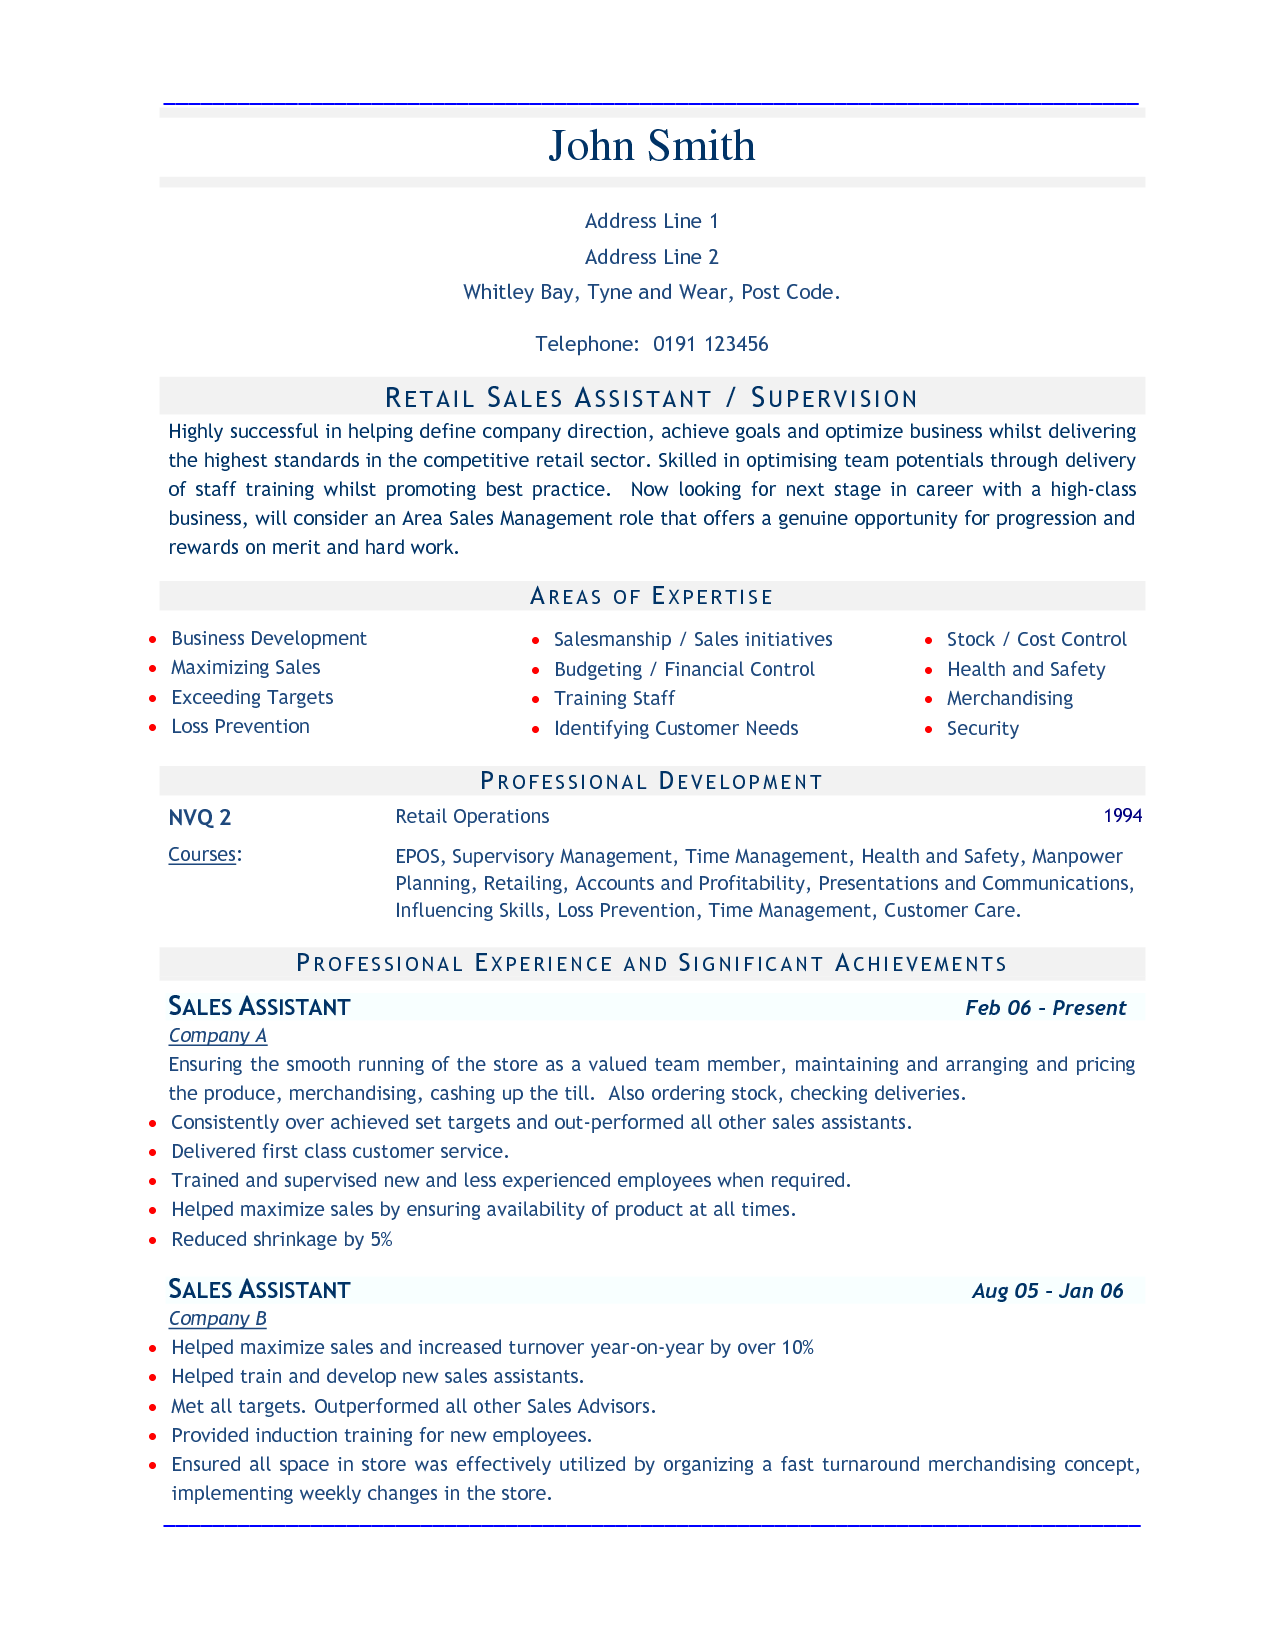 Retail Resume Template Retail Sales Resume  Sales Assistant 3  Job Stuff  Pinterest